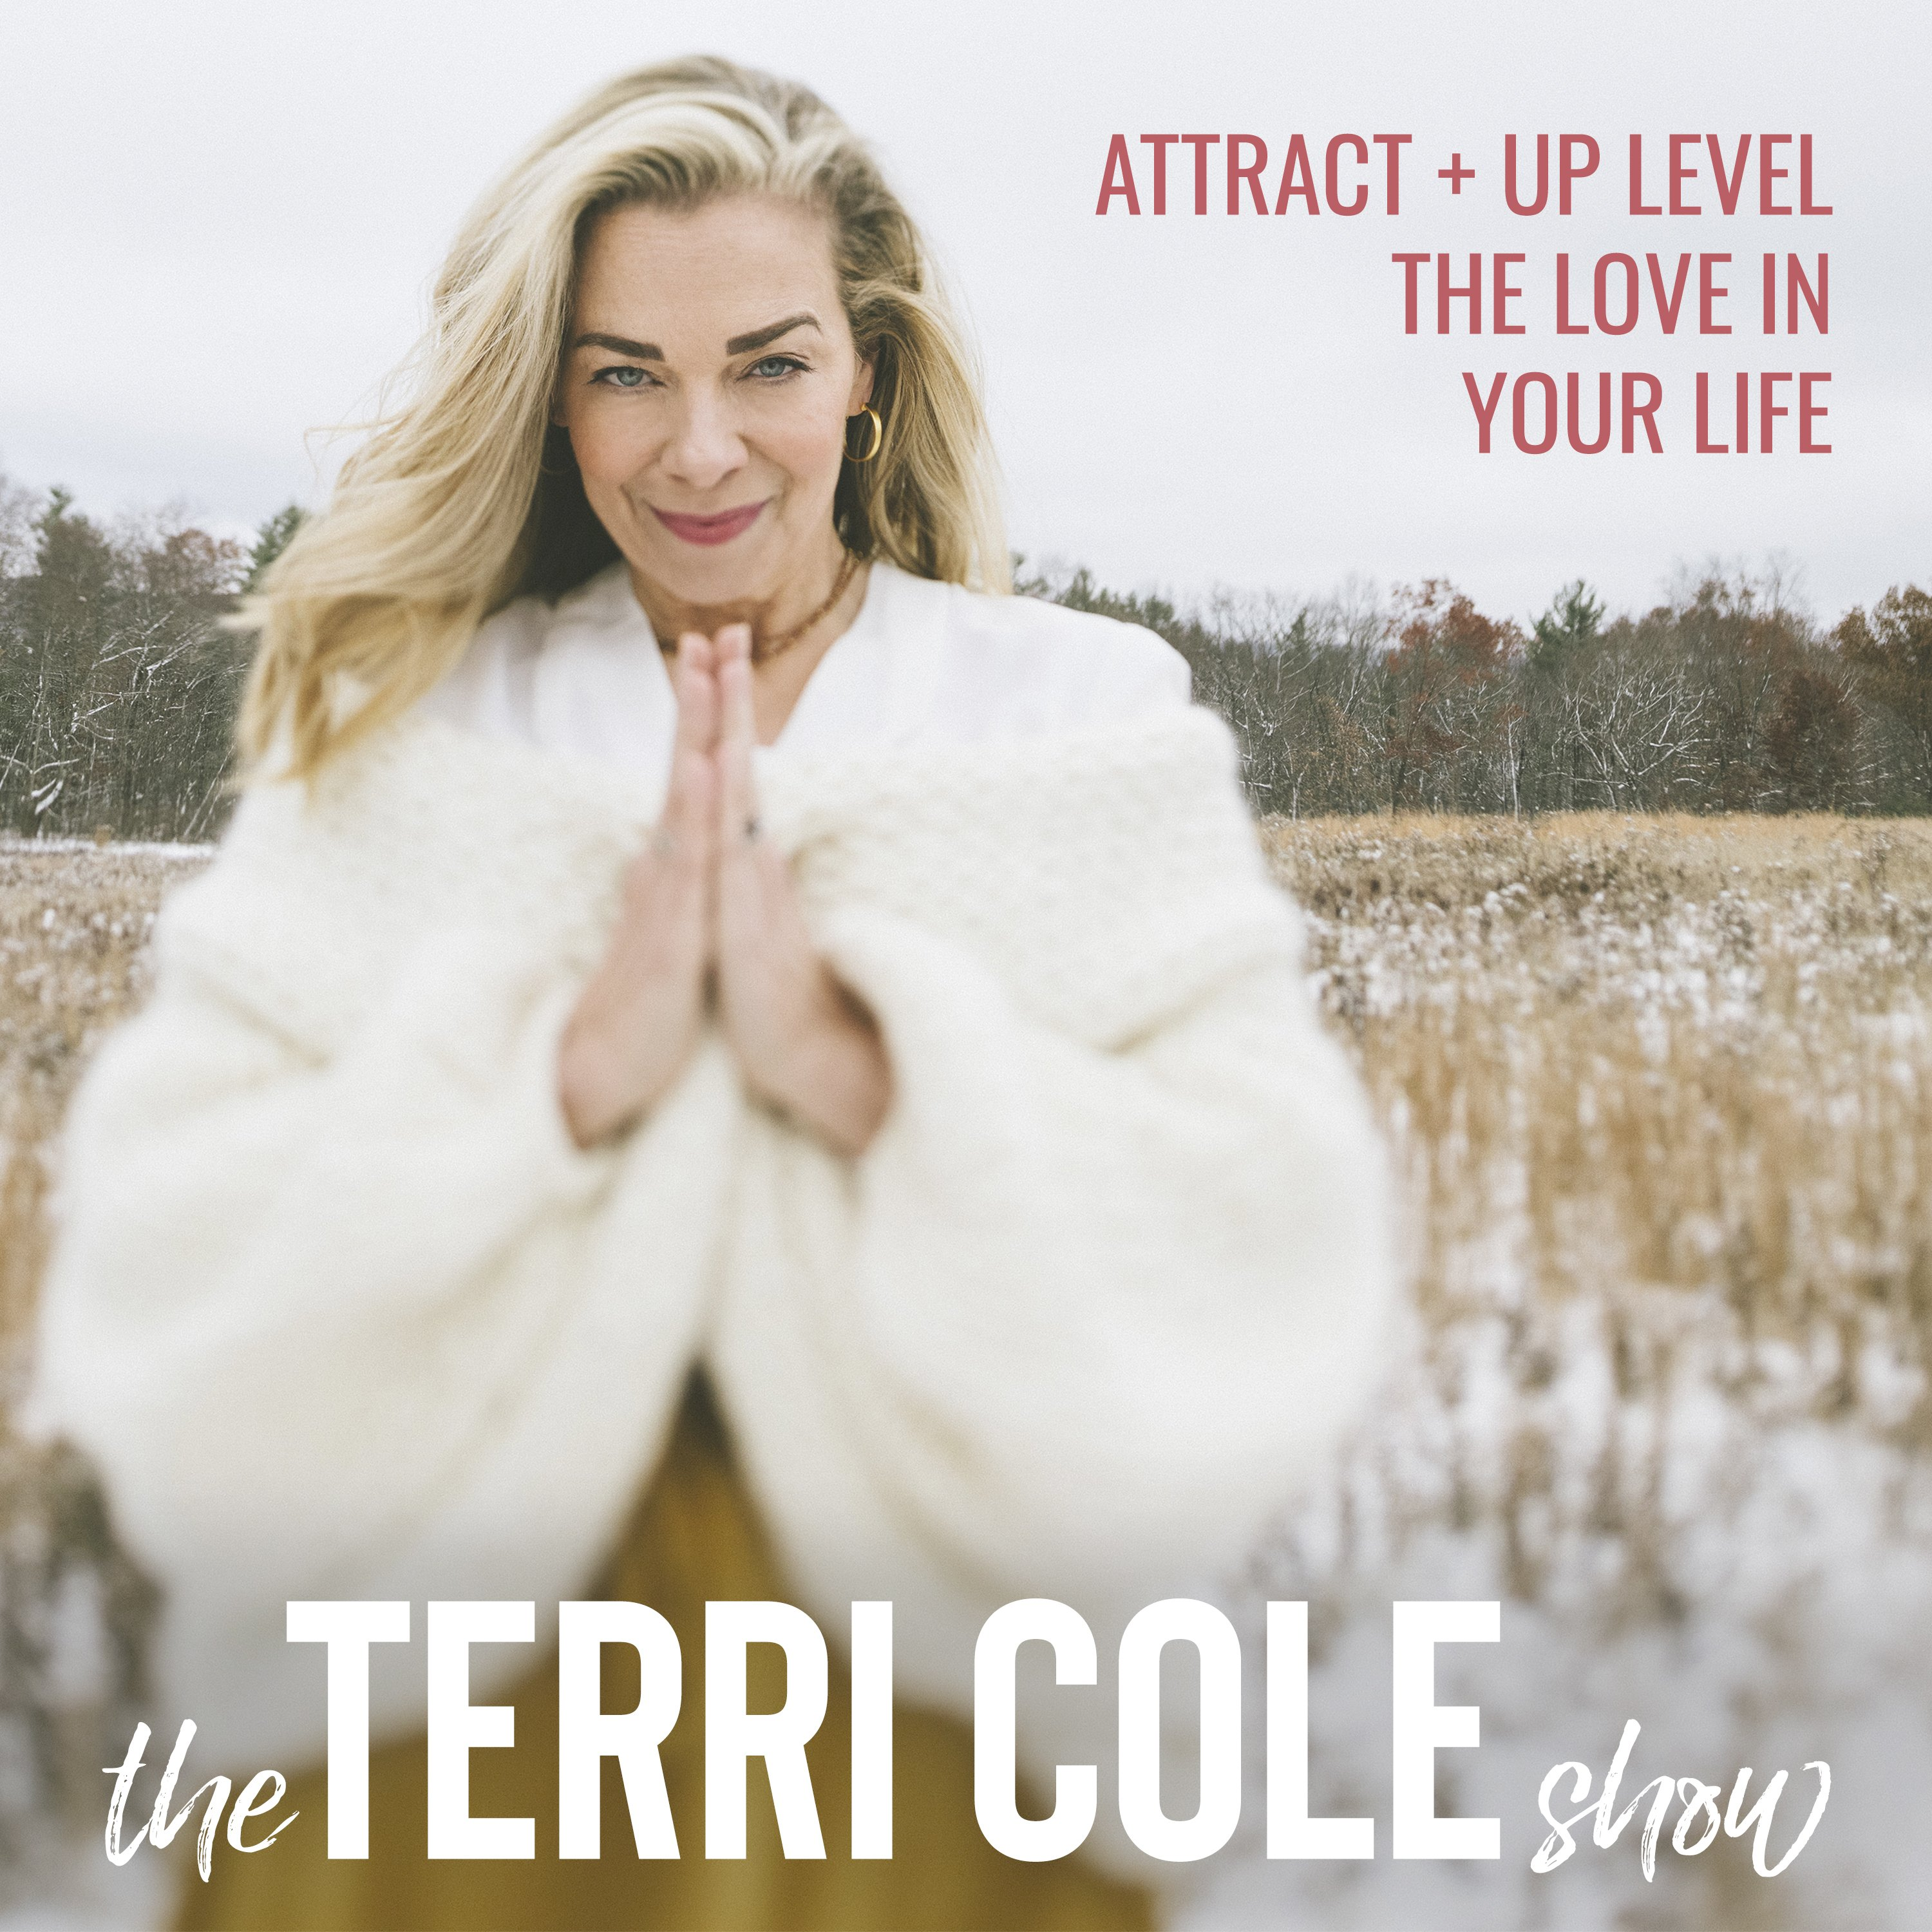 Attract + Up Level the LOVE in Your Life on The Terri Cole Show